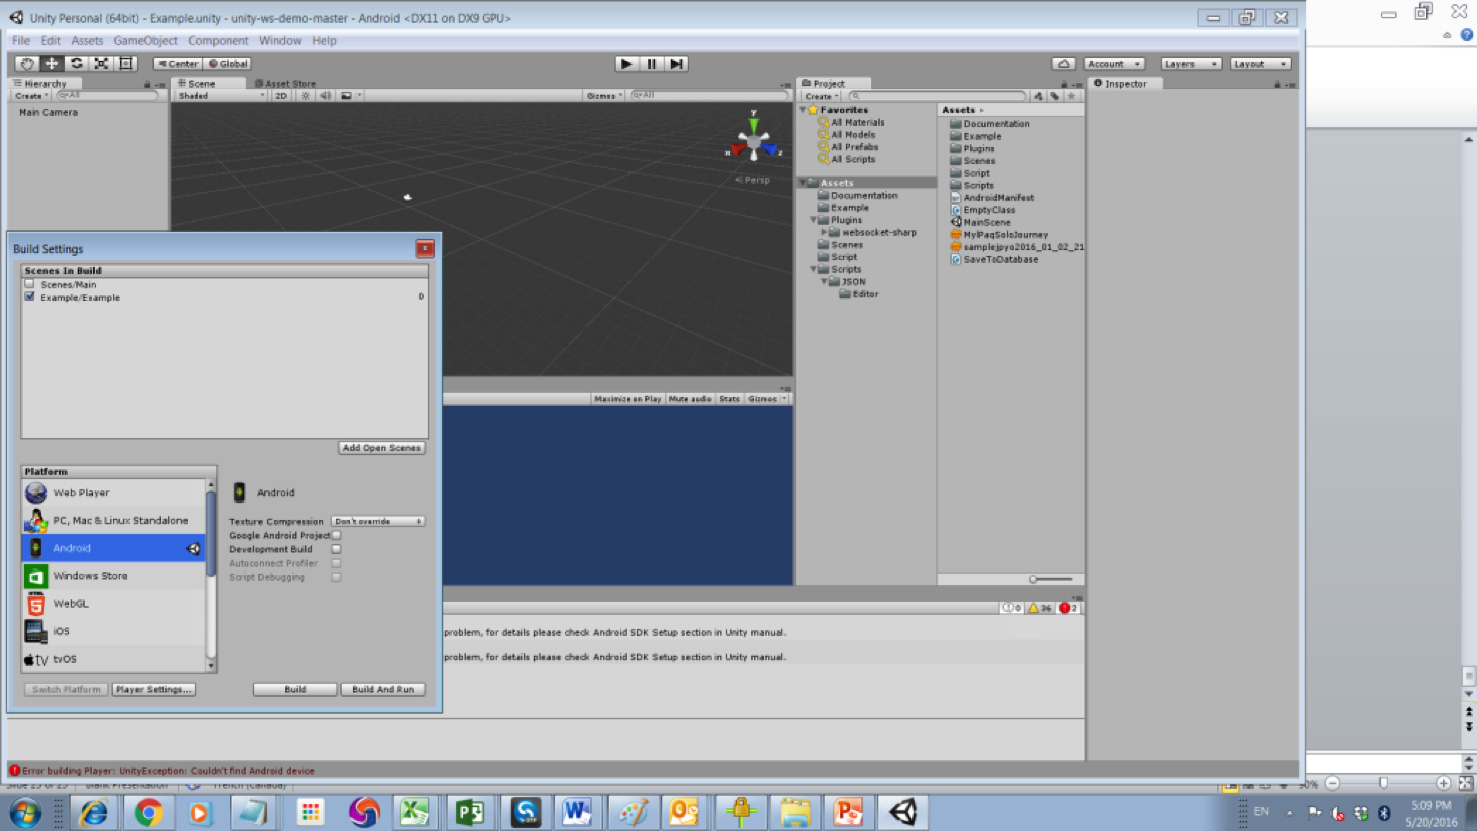 Install a development environment Unity/Android/SDK(Robot) for